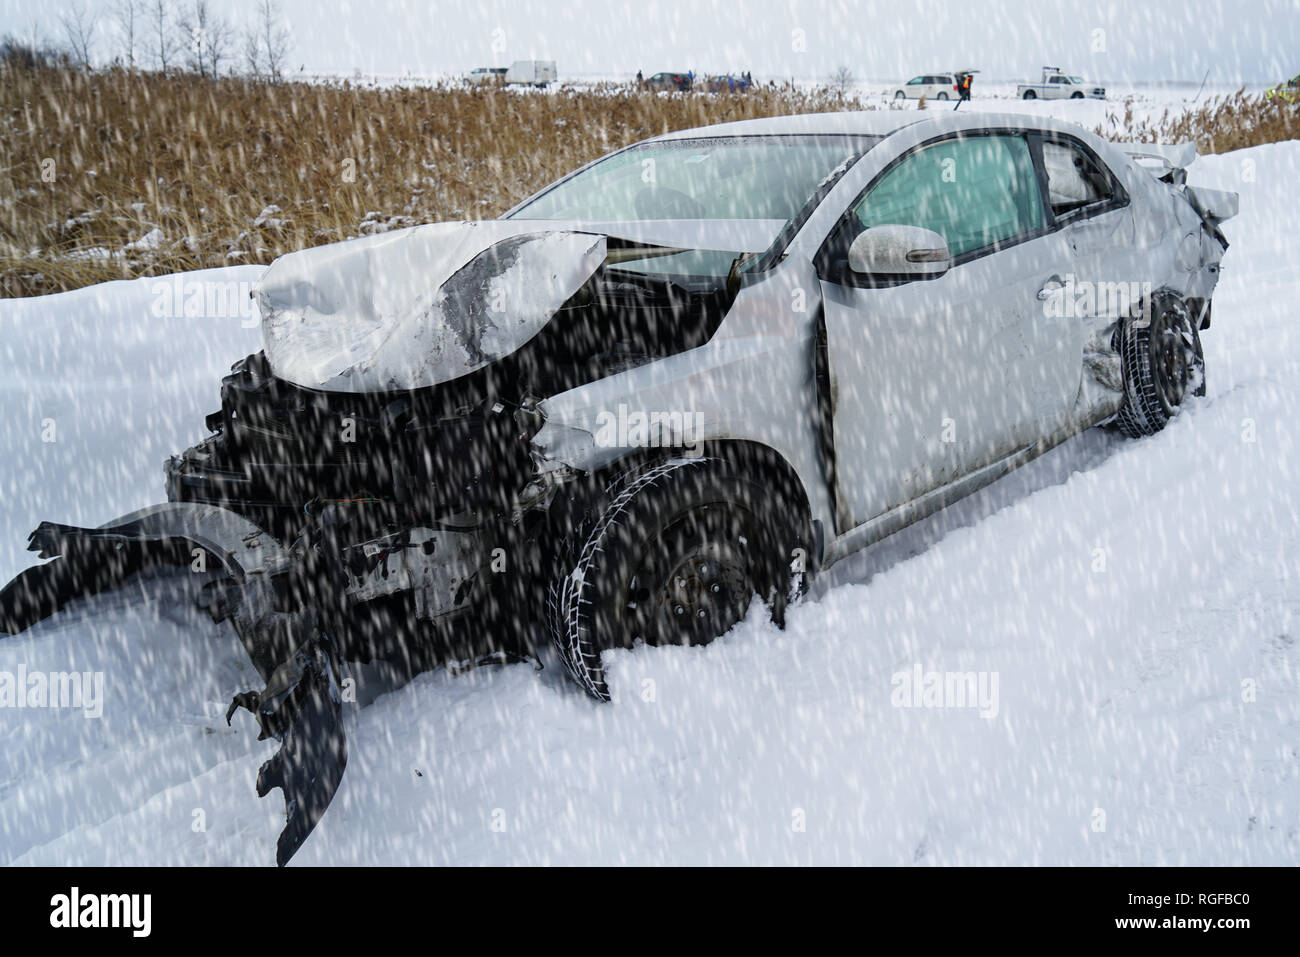 quebec,canada,27january,2019.damaged car on highway due to hazardous